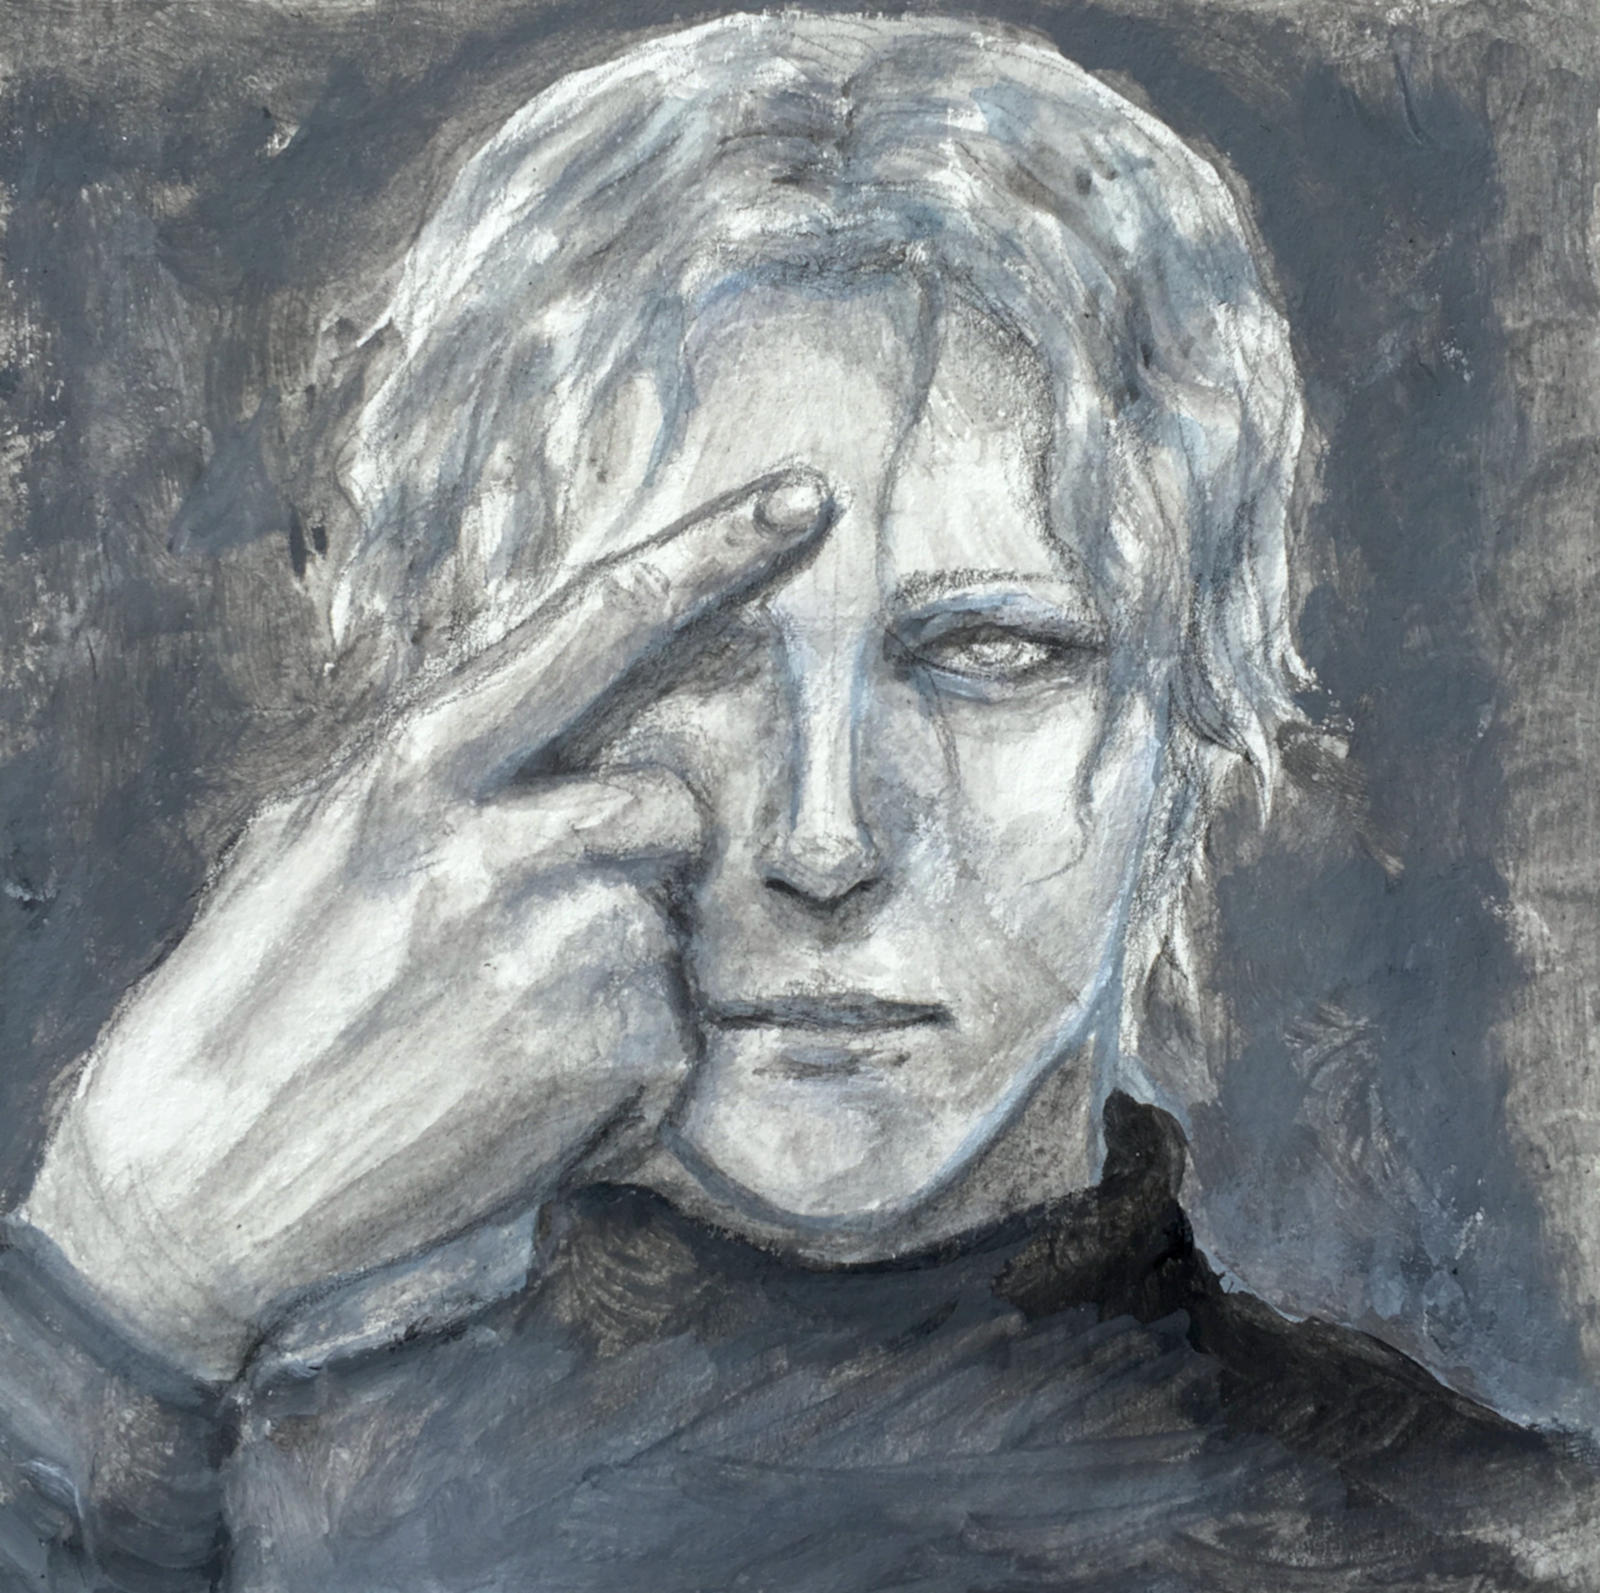 Johan Liebert By Austori On DeviantArt